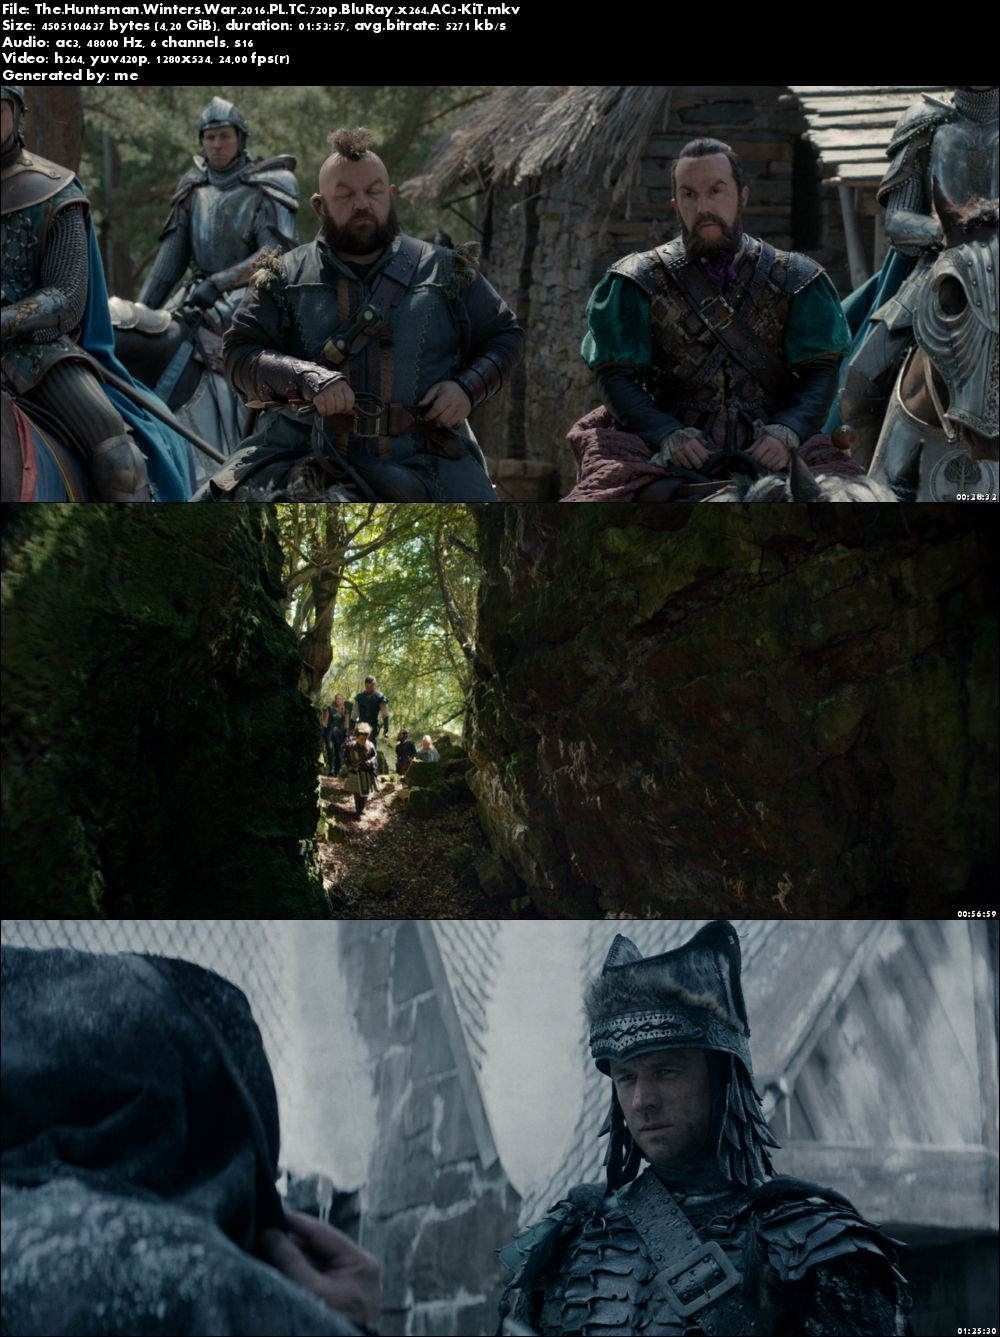 Łowca i Królowa Lodu / The Huntsman: Winter's War (2016) PL.TC.720p.BluRay.x264.AC3-KiT / Lektor PL